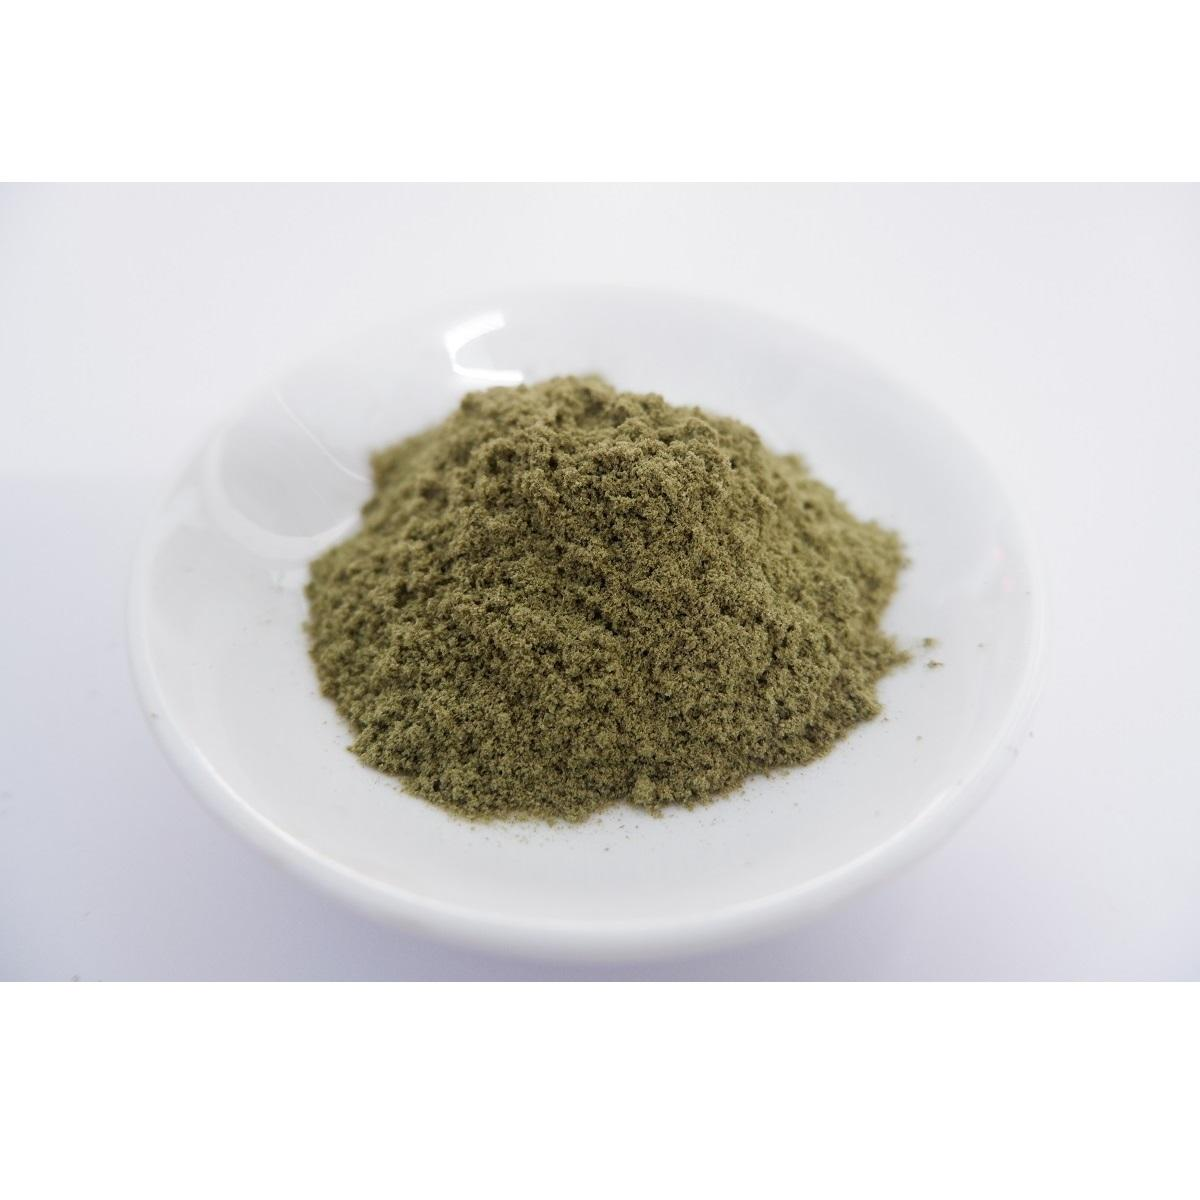 Laver Variety GCAP Brand Green Food Organic Cultivation Type Sea Grapes Powder Extract From Viet Nam